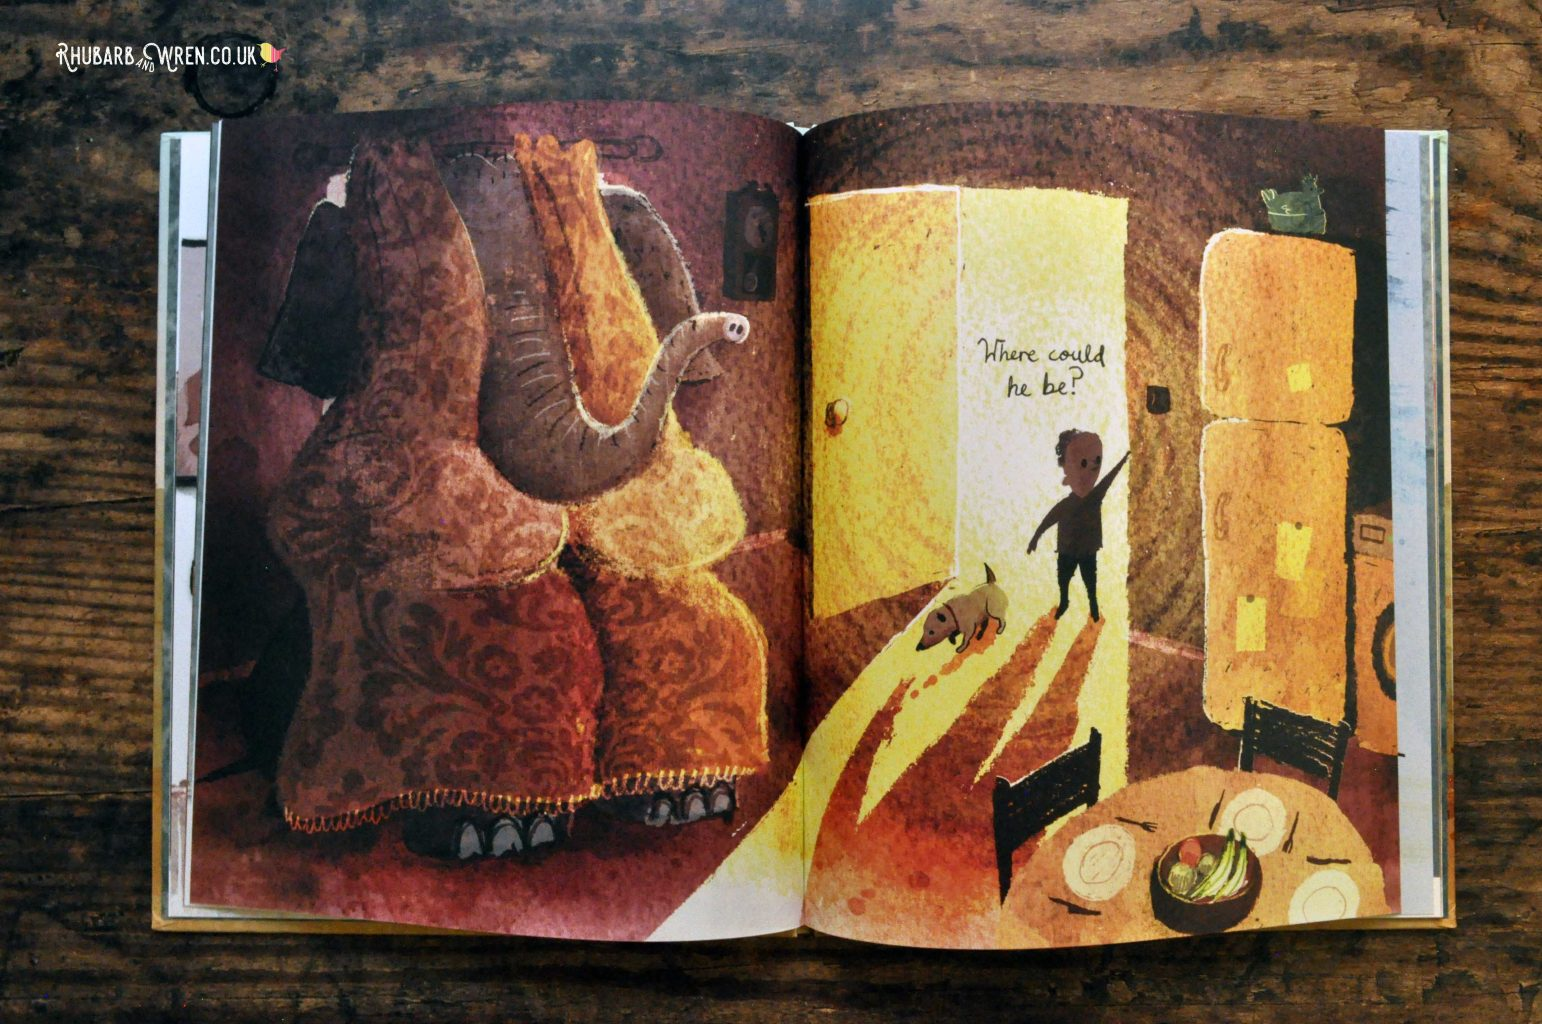 A page from 'Have You Seen Elephant' by David Barrow, where the elephant is hiding, very obviously, behind a pair of curtains.